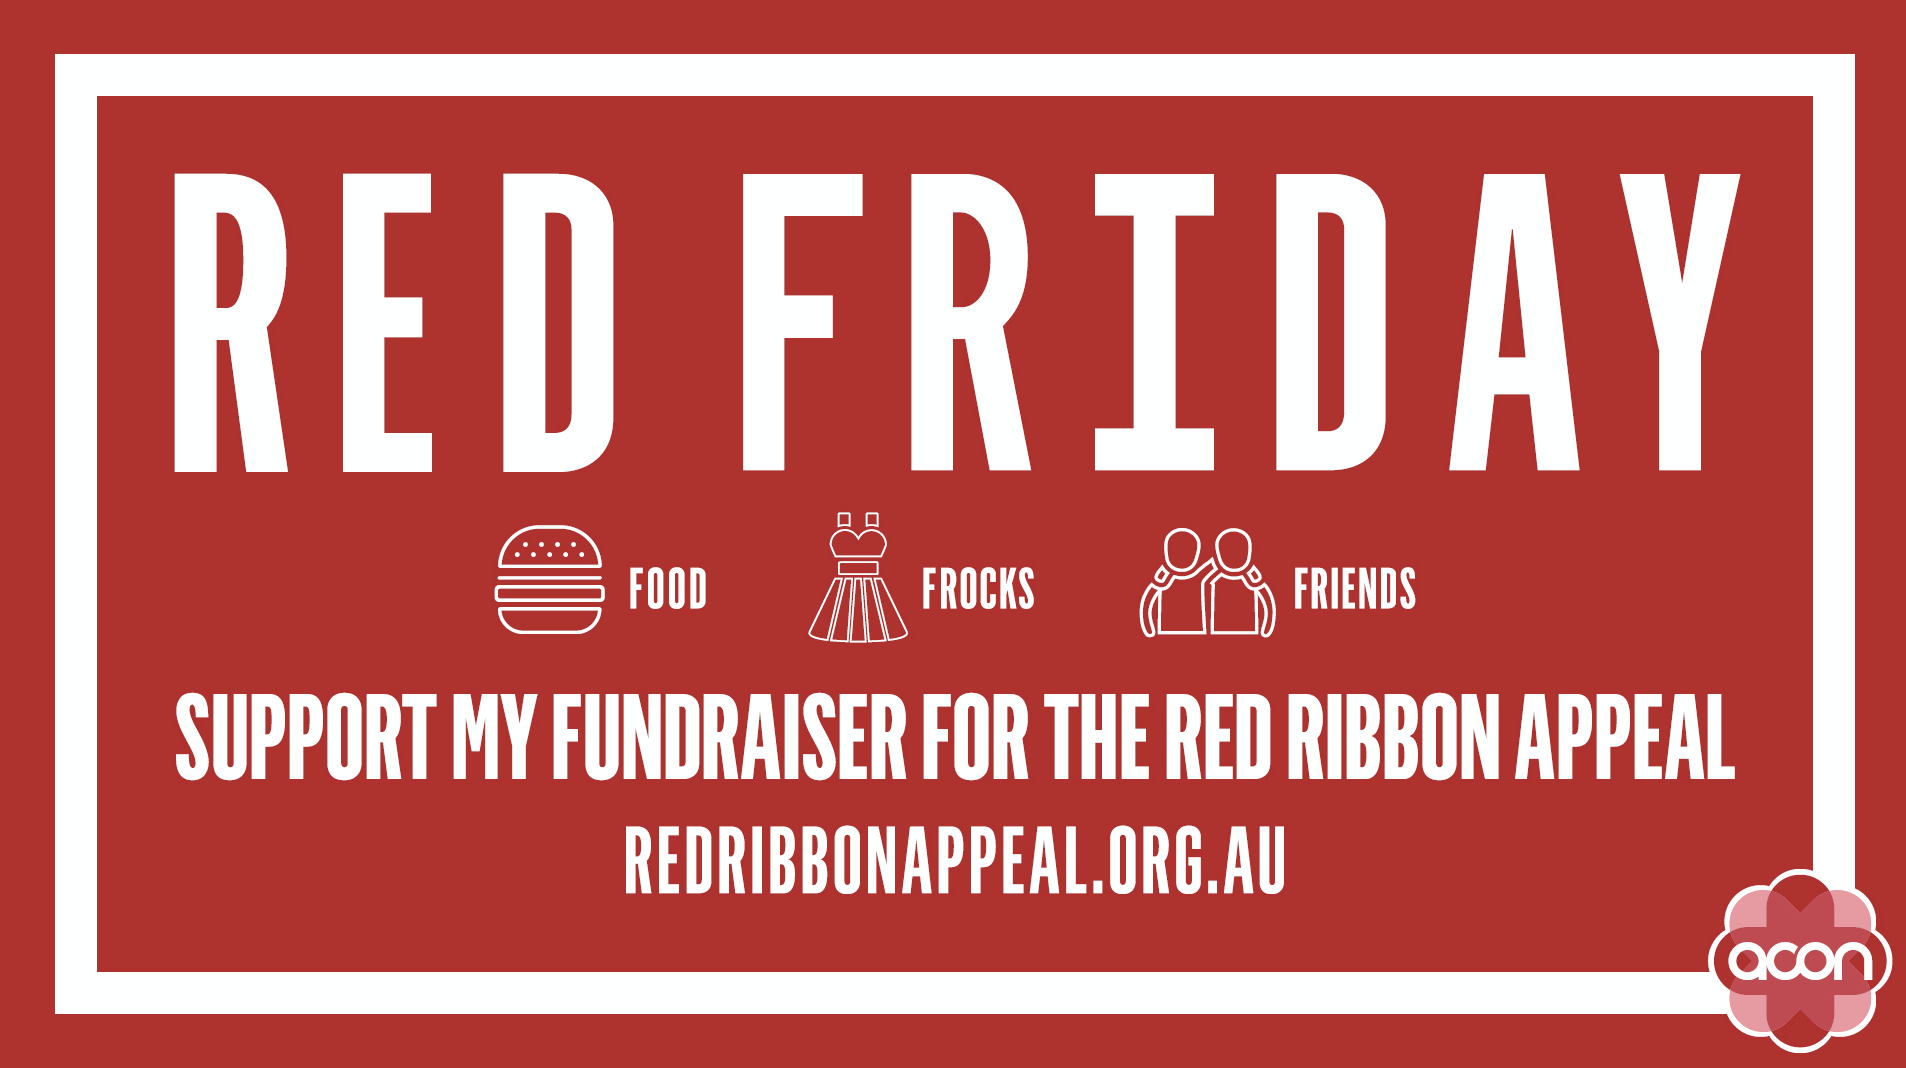 Red Friday - Facebook Event Cover (JPG)